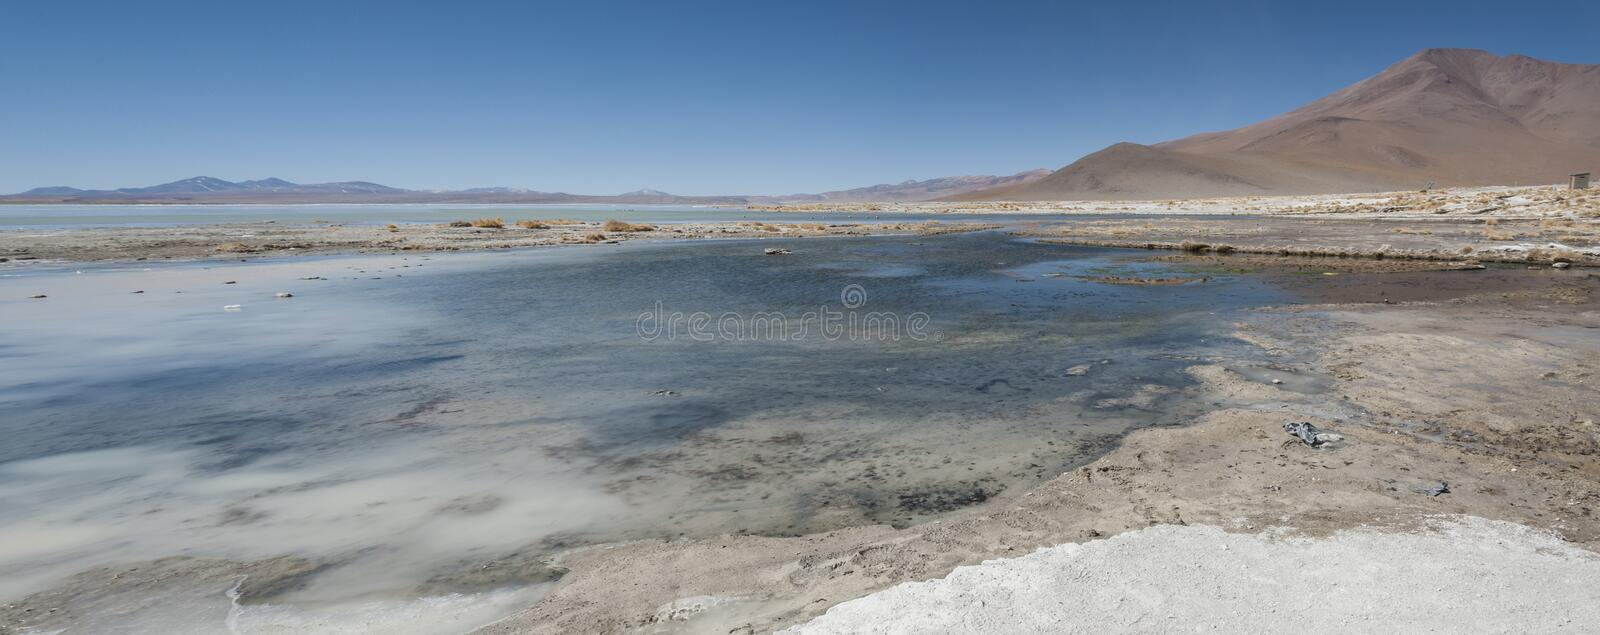 Laguna y Termas de Polques hot spring pool with Salar de Chalviri in background, Salar de Uyuni, Potosi, Bolivia royalty free stock photo